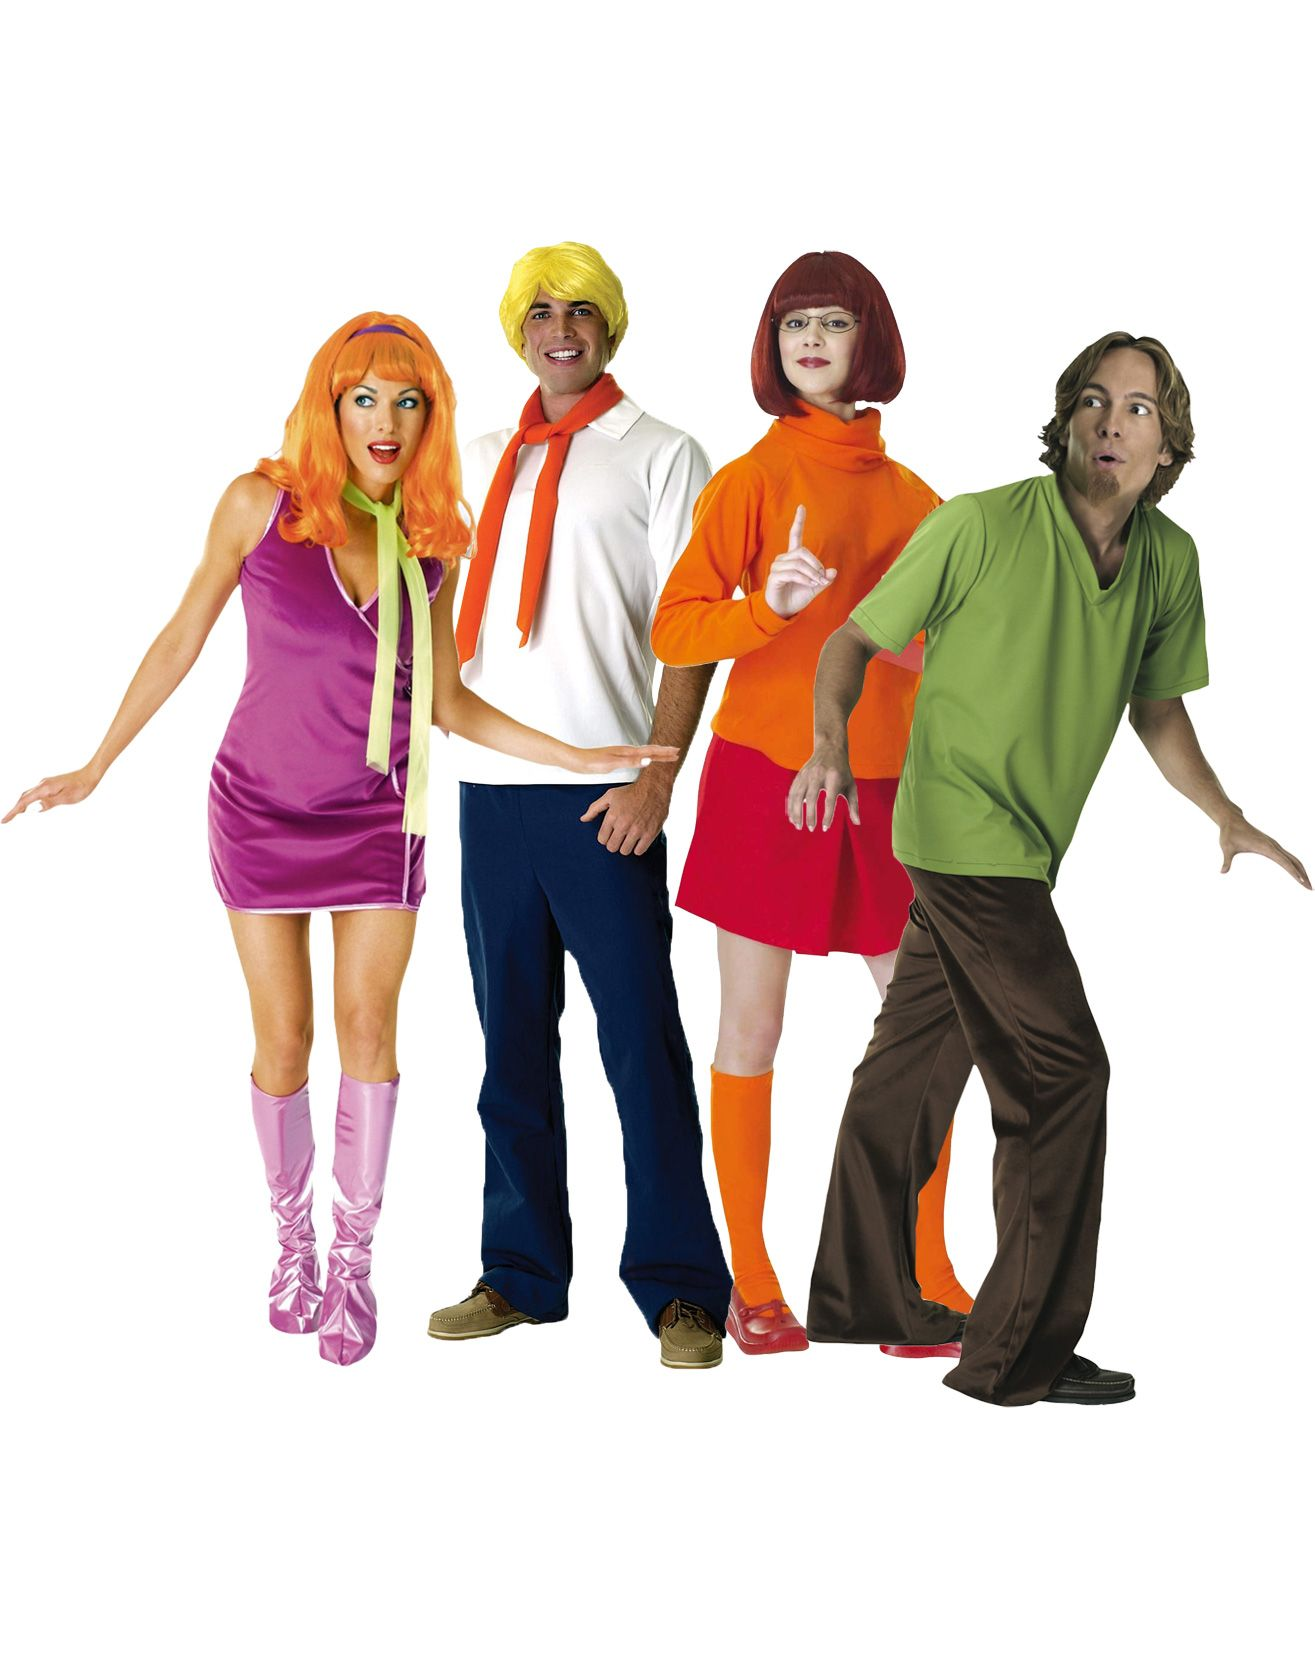 scooby doo gang costumes : vegaoo adults costumes | holidays in 2018